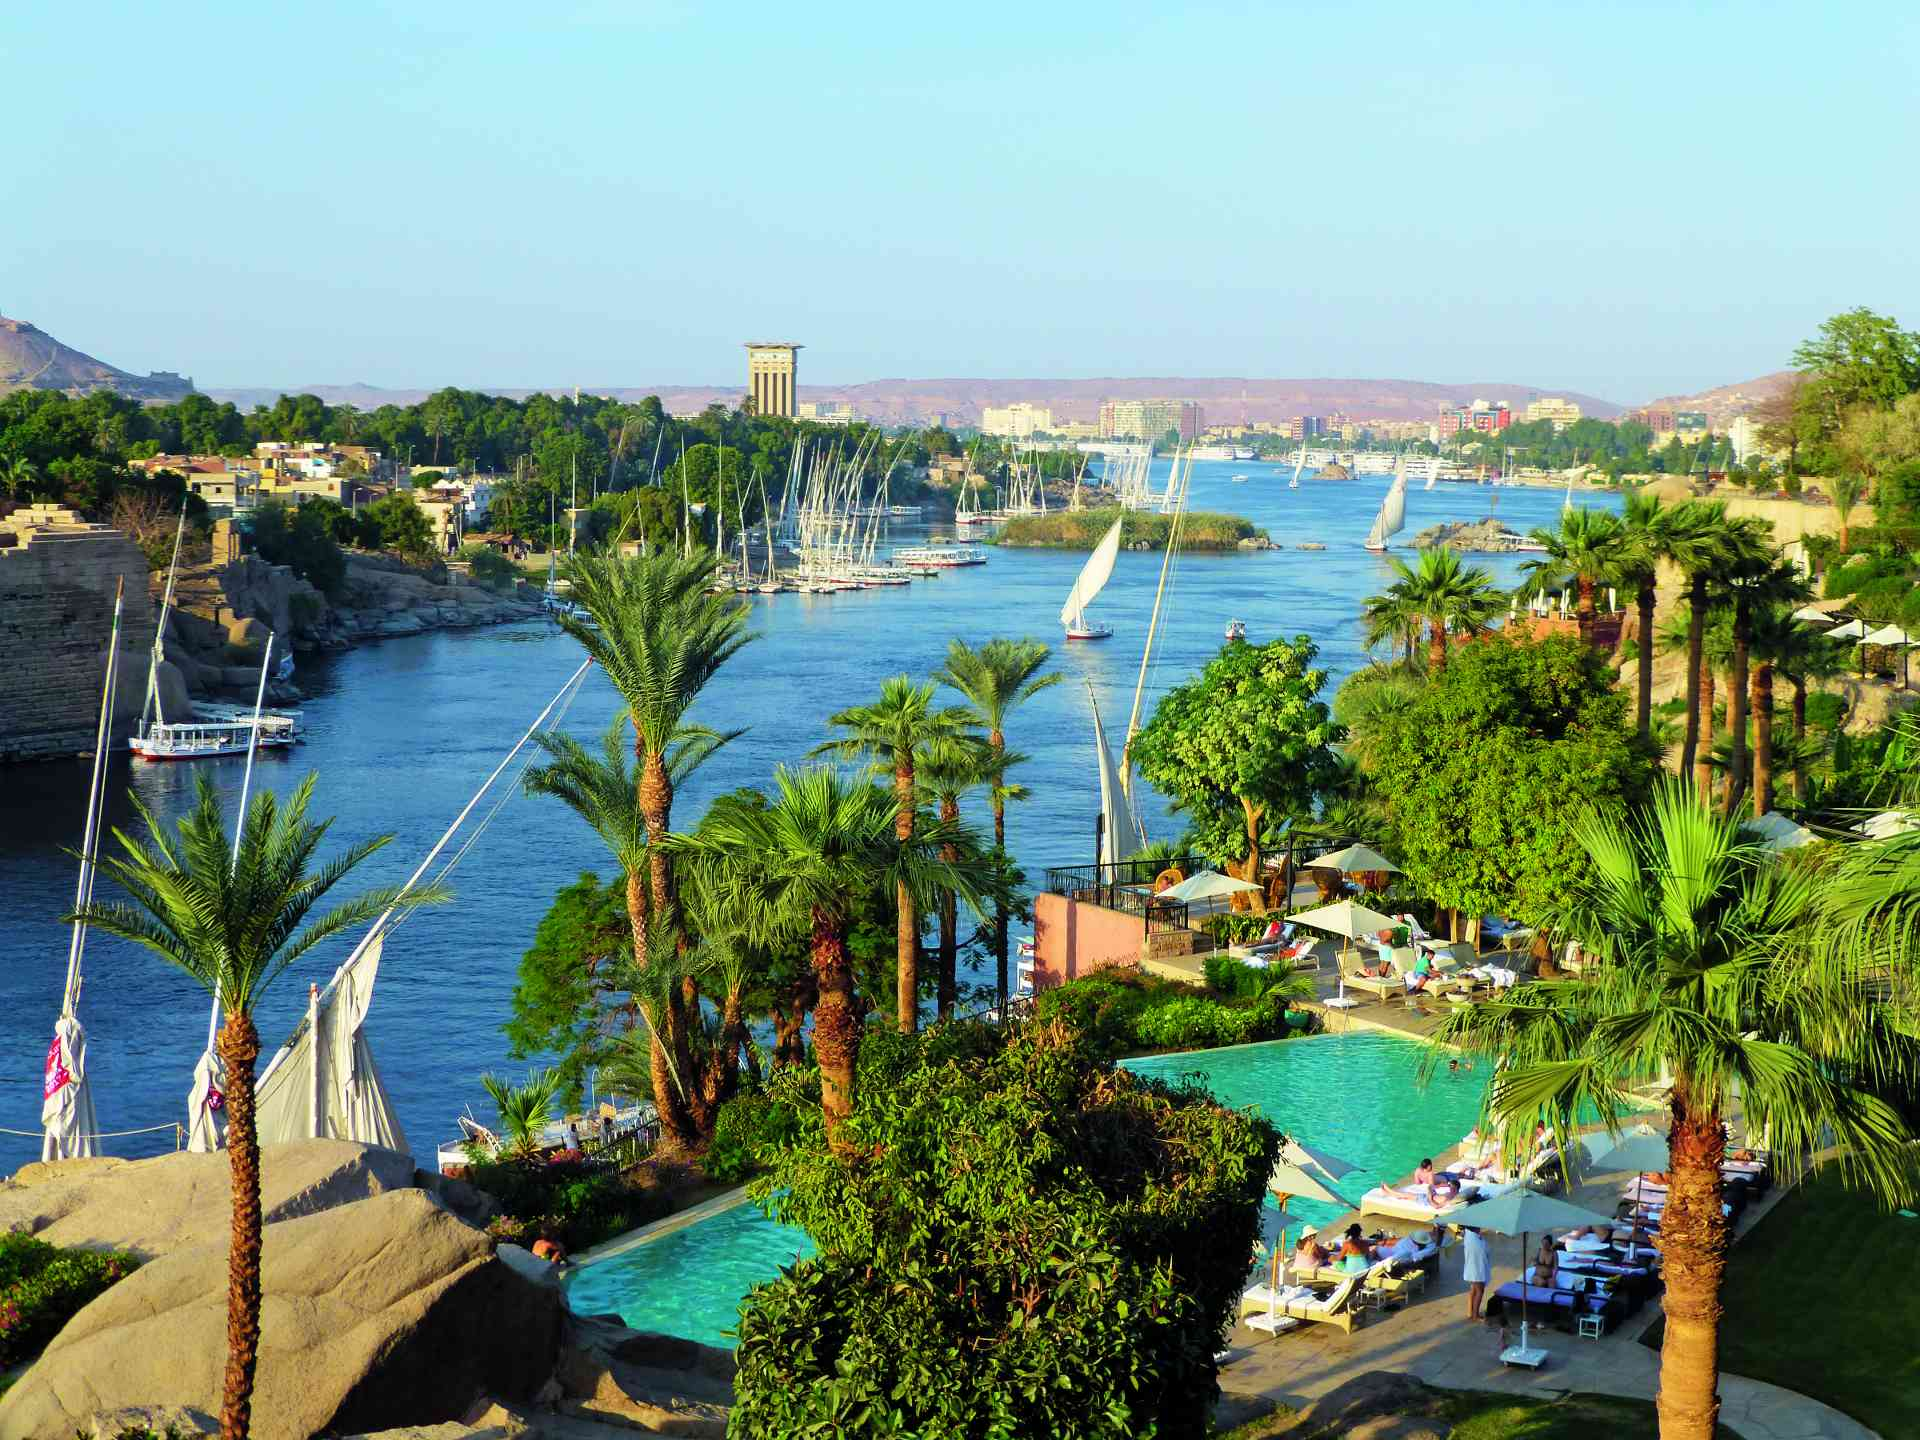 View over Nile from Old Cataract Hotel, Egypt